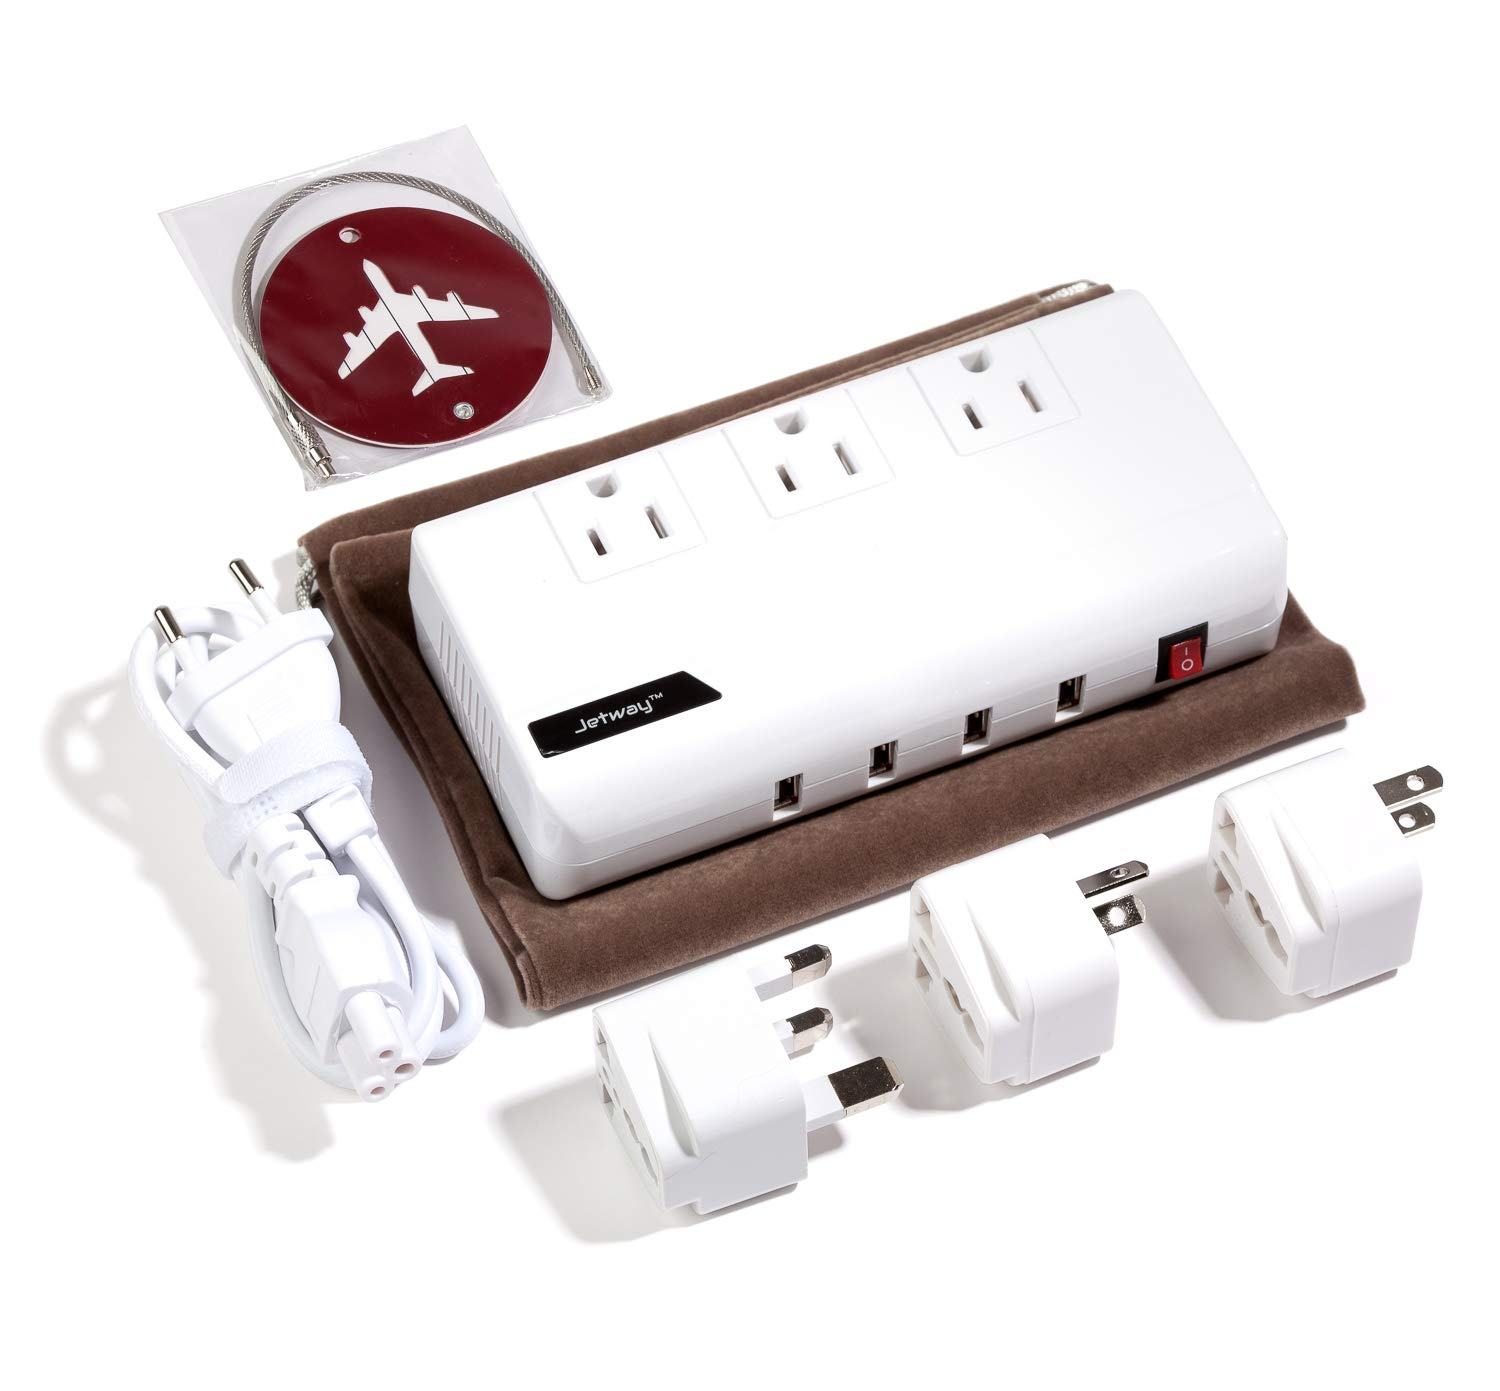 Best International Travel Adapter and Voltage Converter 200 Watts - Quiet Mode - 4 USB - Bonus Luggage TAG & CASE - 220V to 110V Travel Converter for UK/AUS/EU/Asia/Africa Guarantee by Jetway Travel Gear (Image #2)